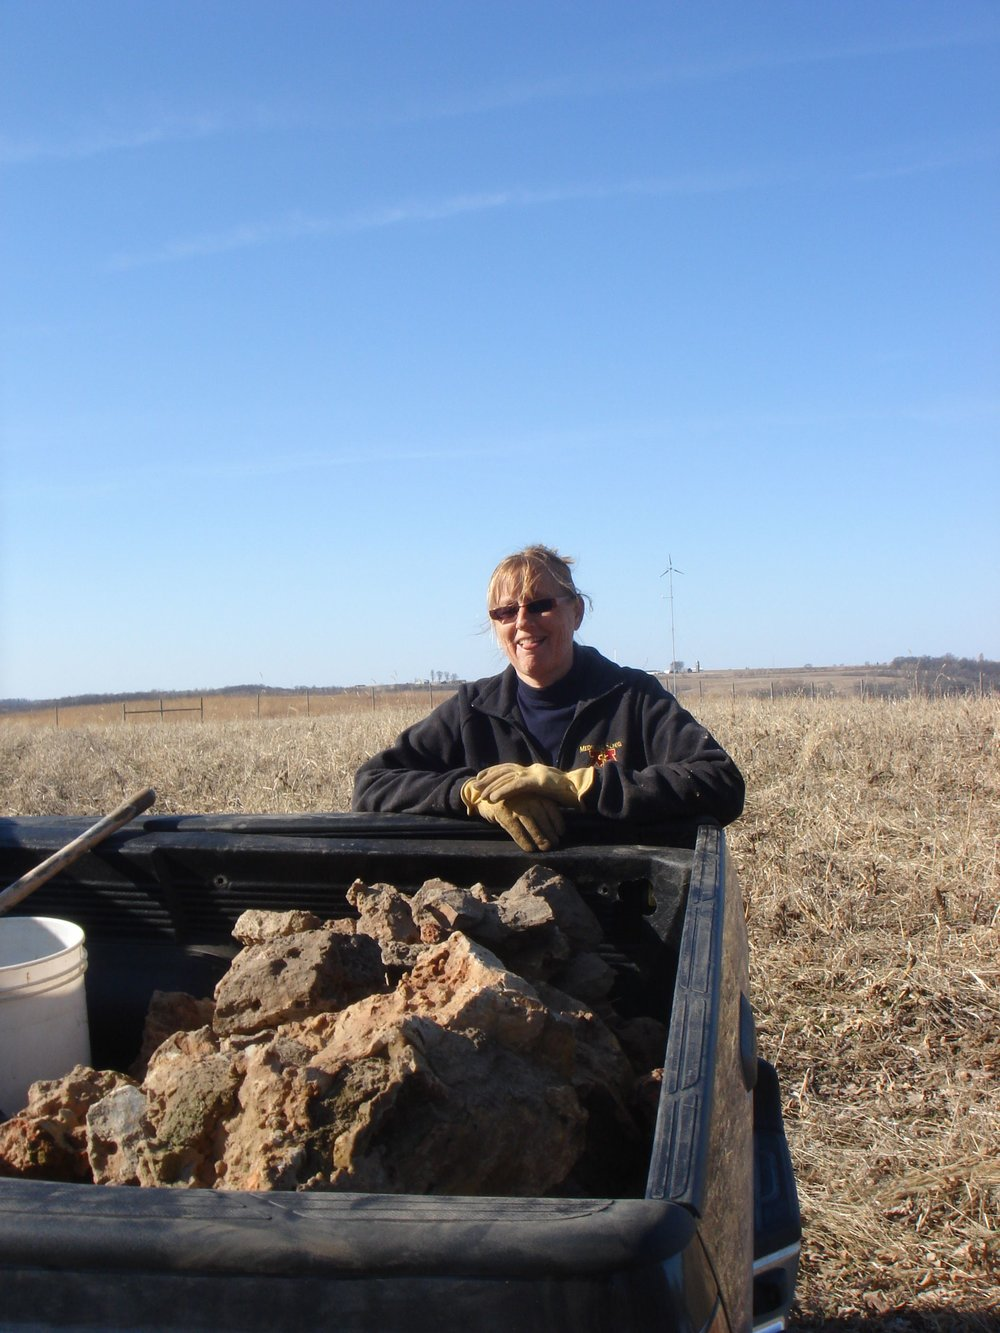 JF Picking rocks 2009.jpg